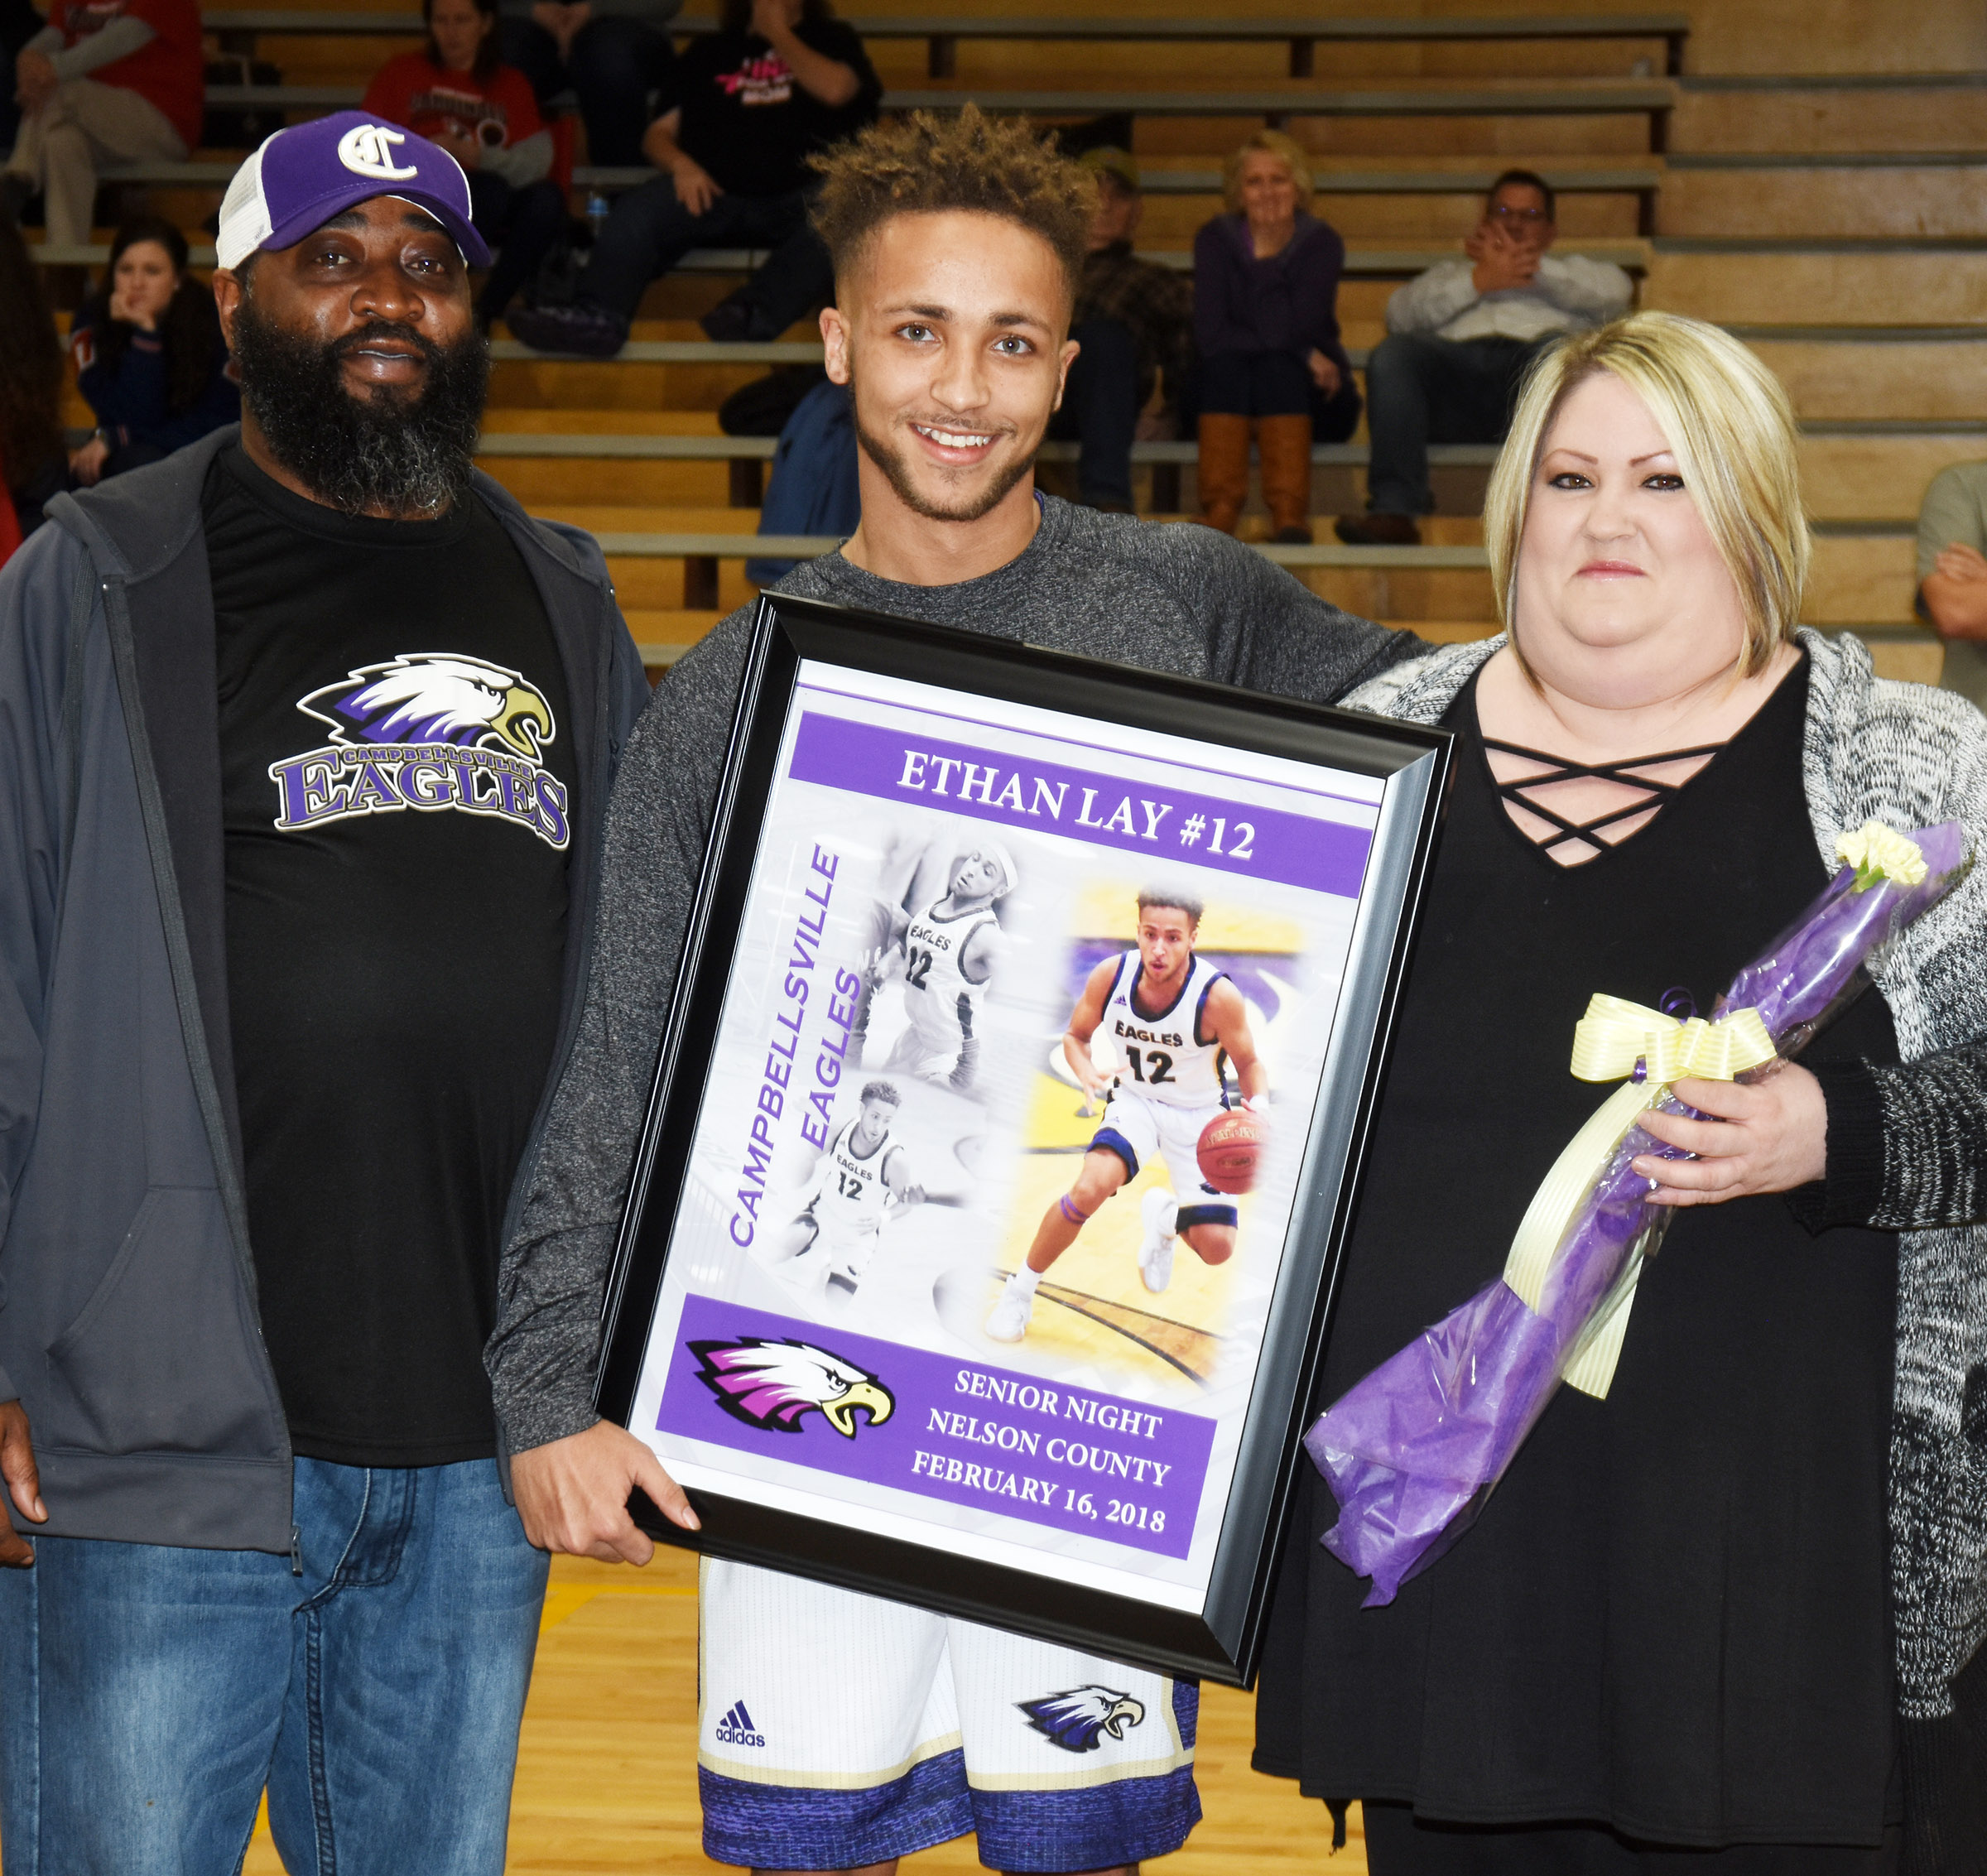 CHS senior boys' basketball player Ethan Lay is honored. He is pictured with his parents, Andree Johnson and Ashley Lay.